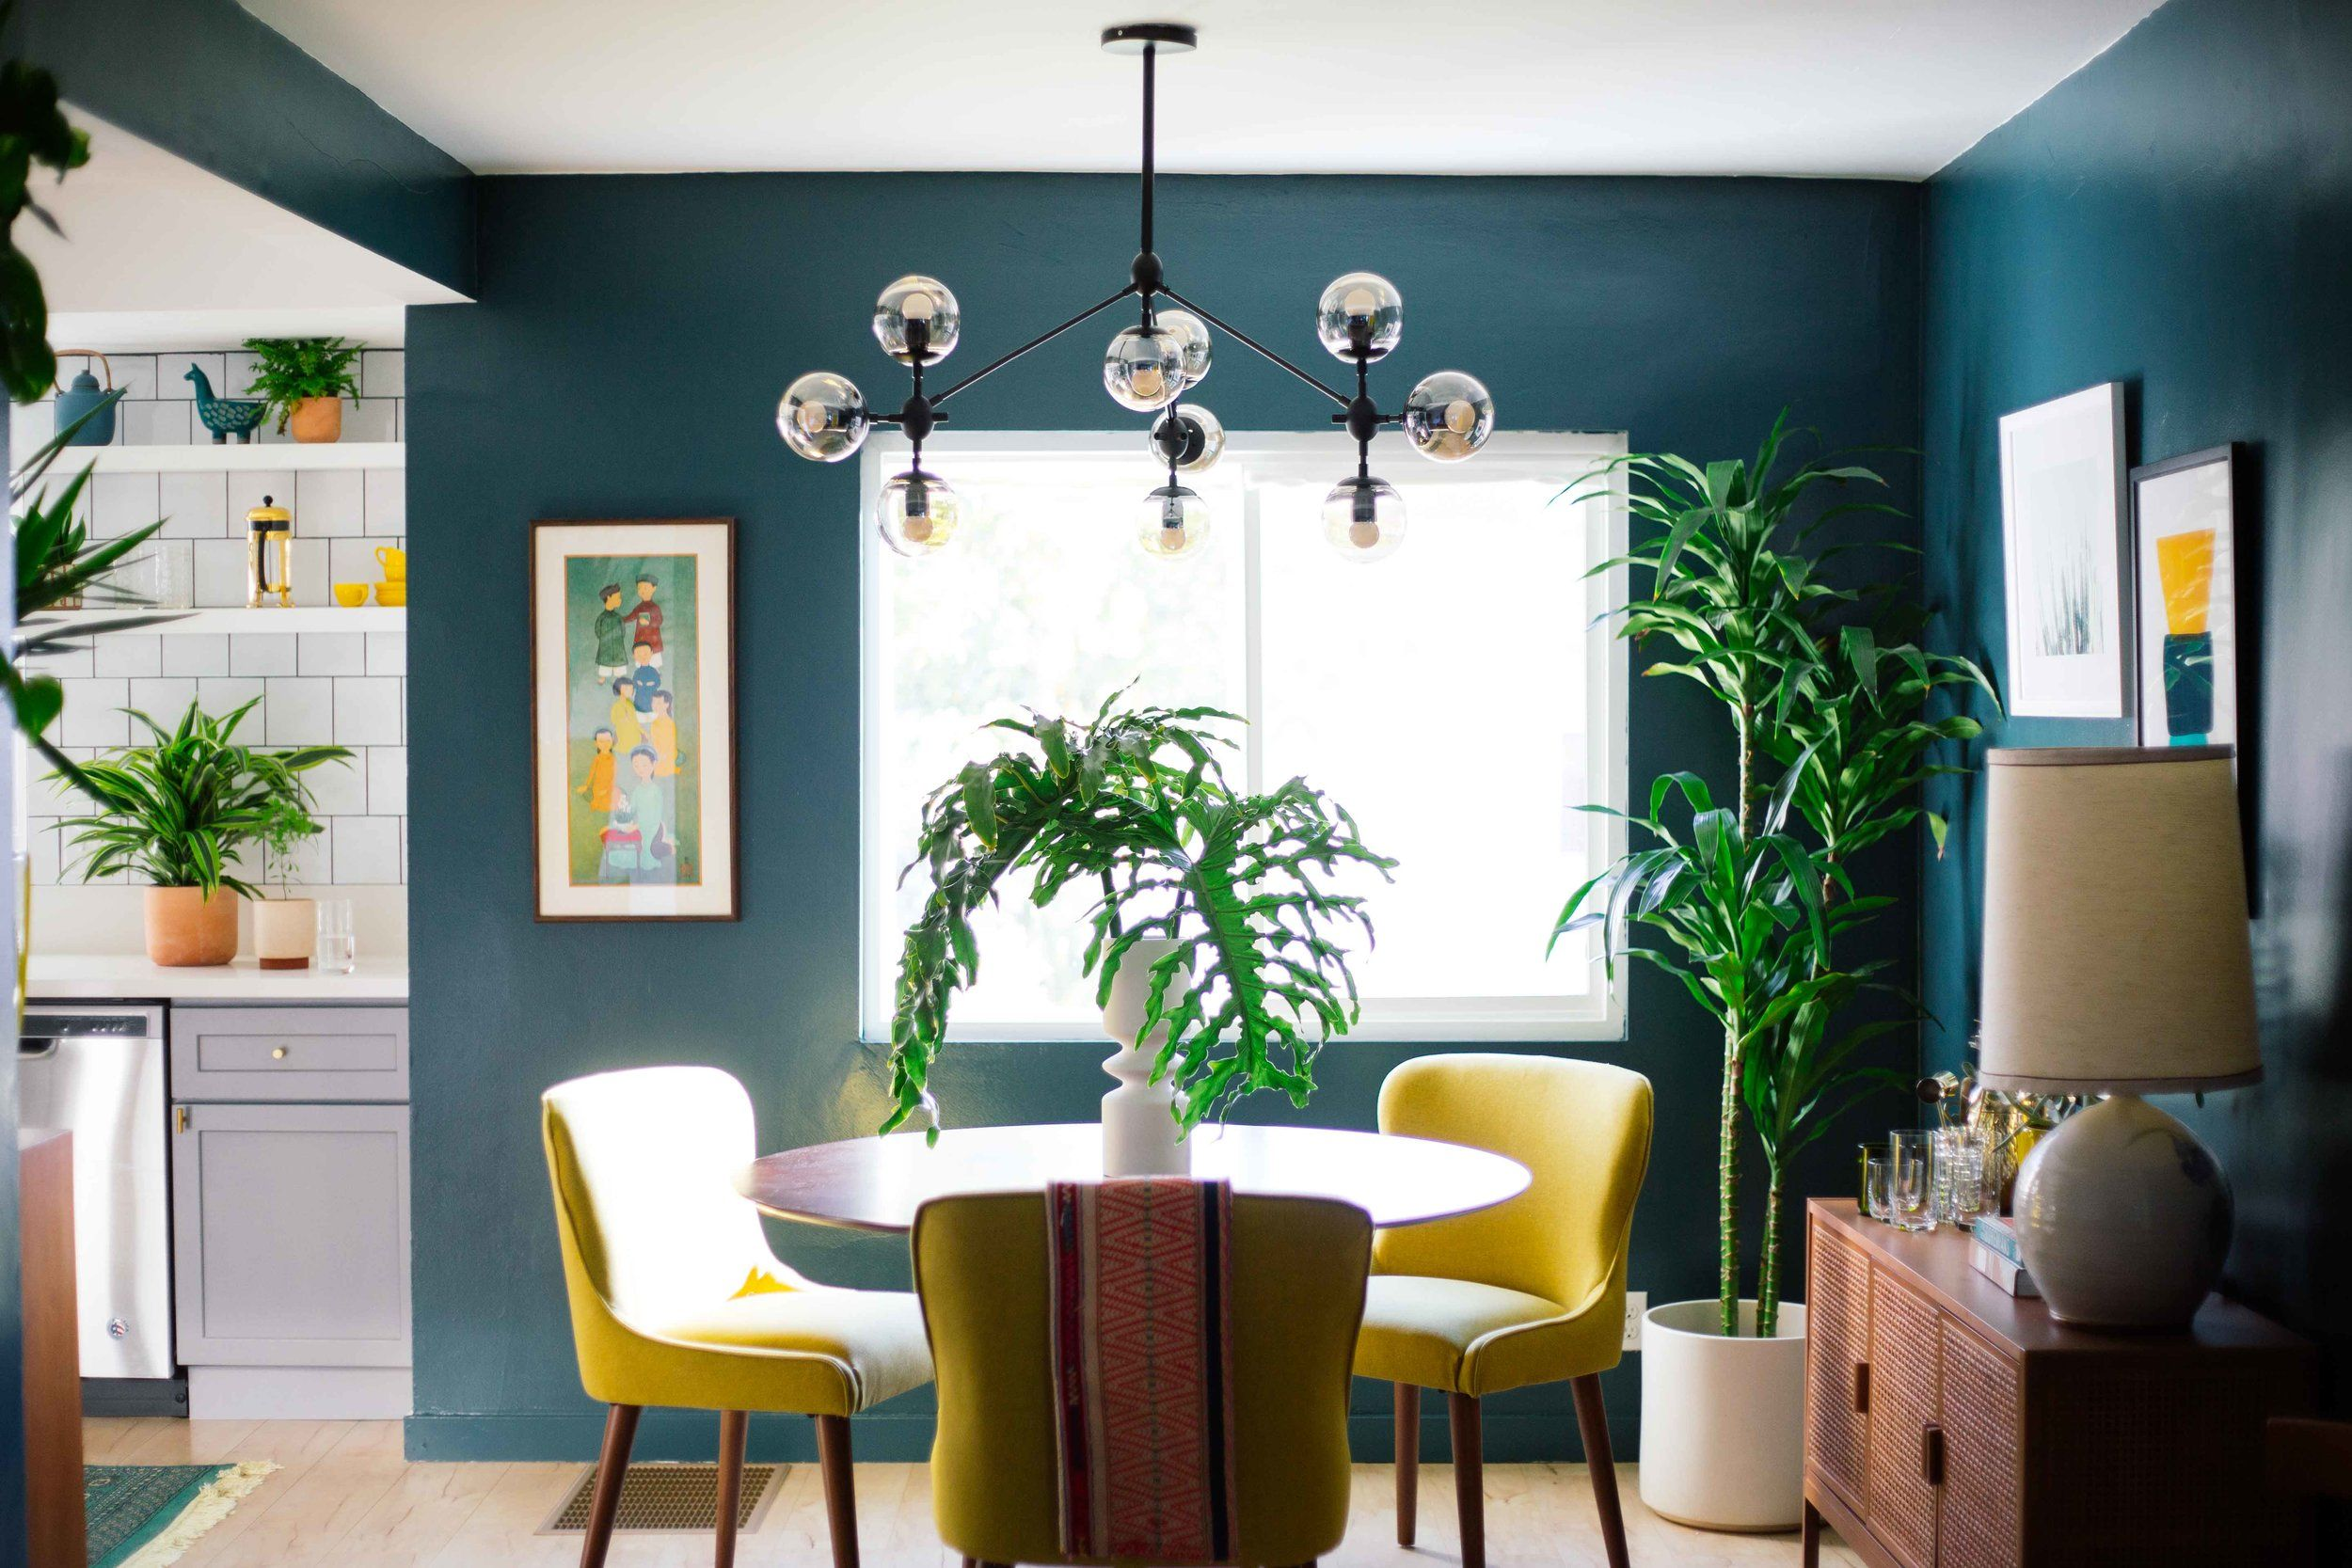 15 Small House Interior Design Ideas   How to Decorate a Small Space The Best Paint Colors For Small Rooms